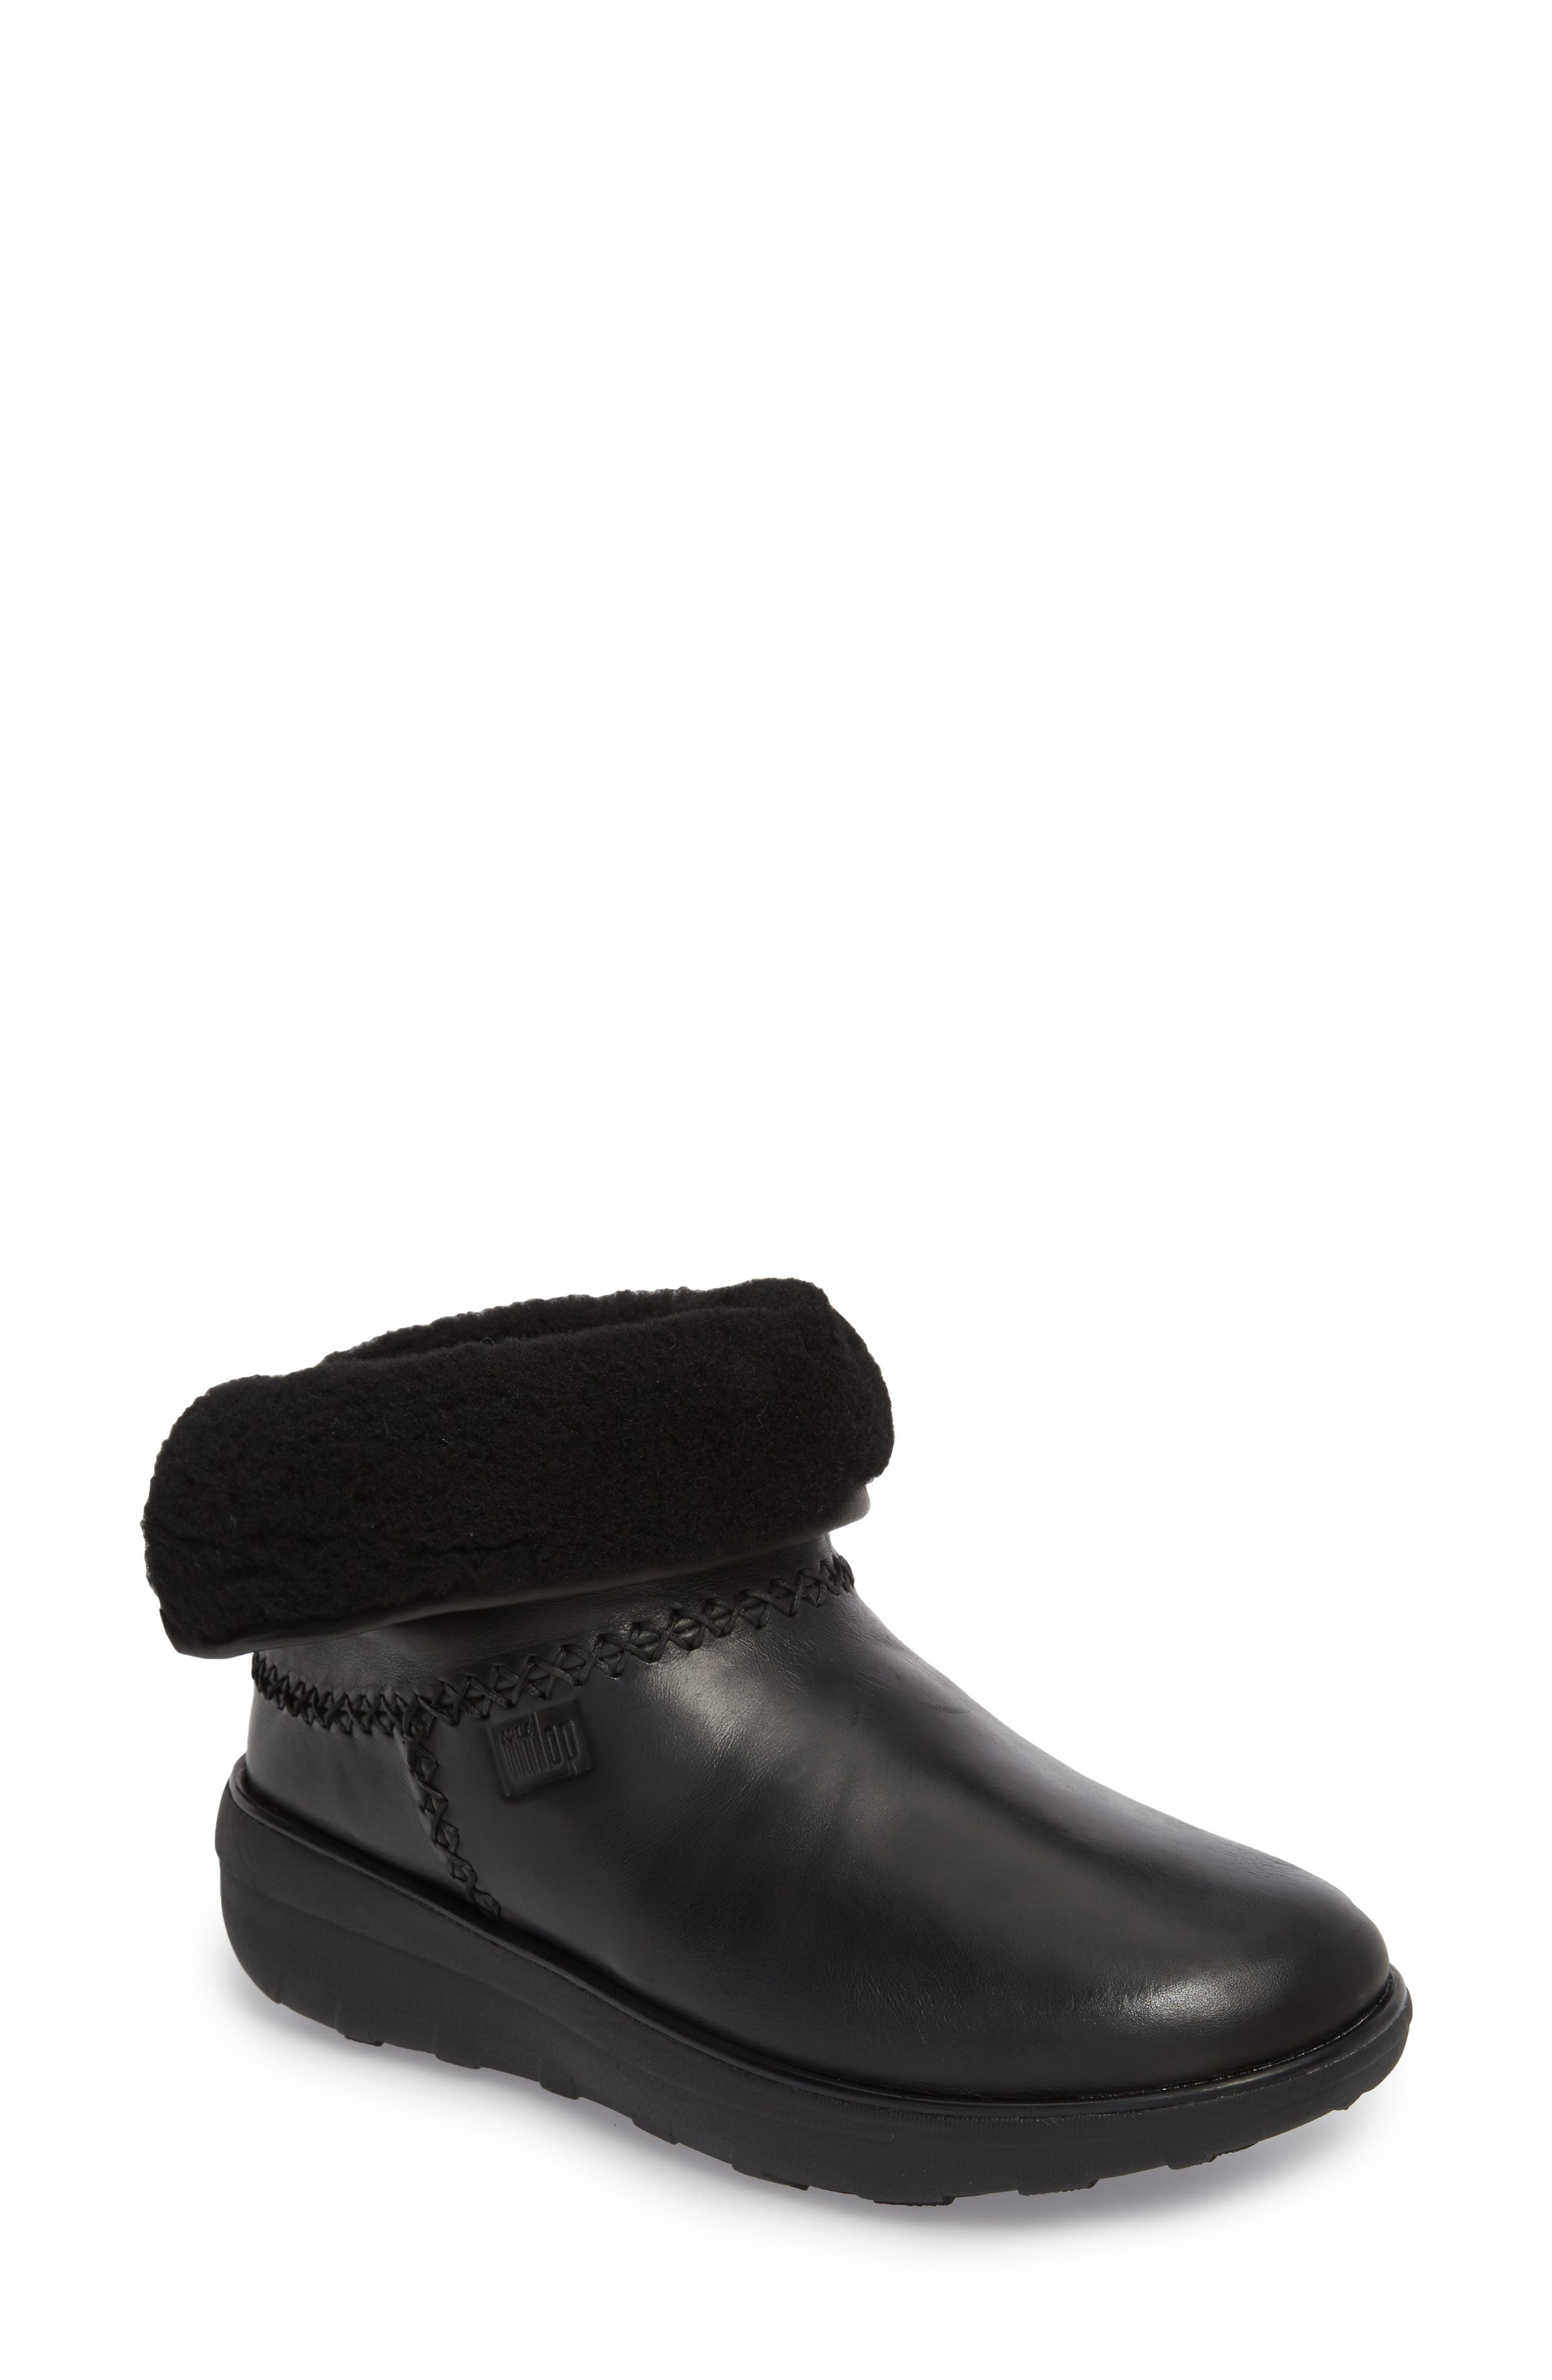 Mukluk Shorty II Boot,                         Main,                         color, Black Leather